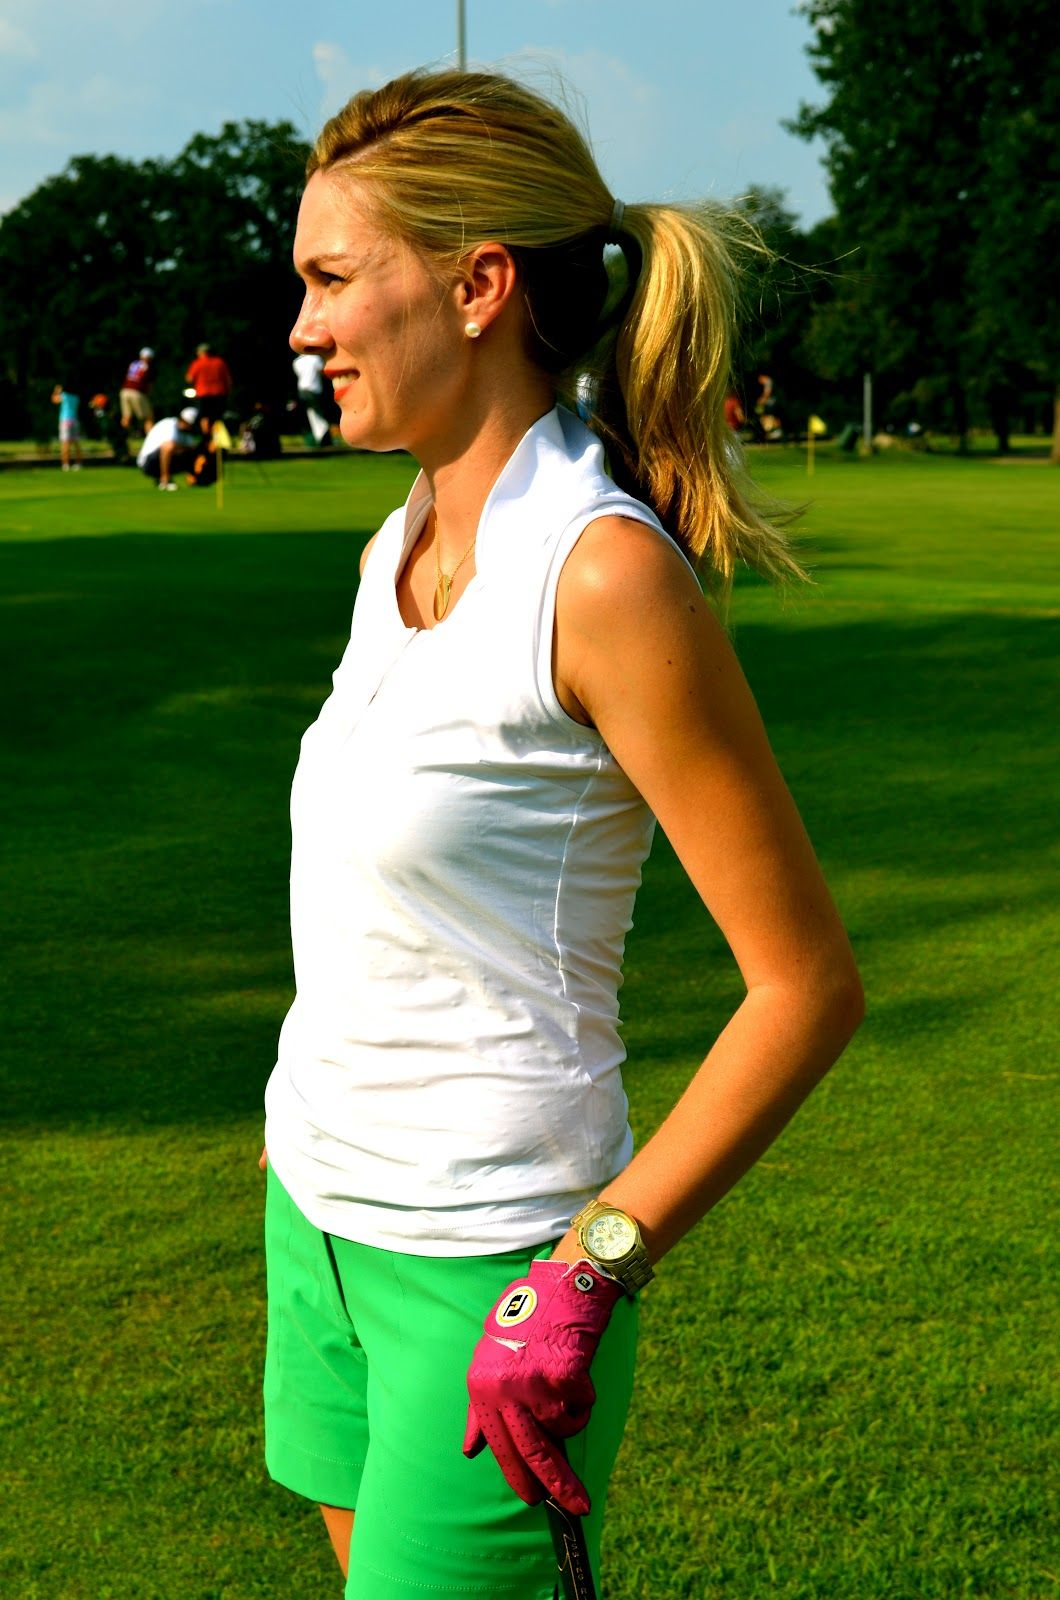 c style blog golf anyone women's golf attire  looks